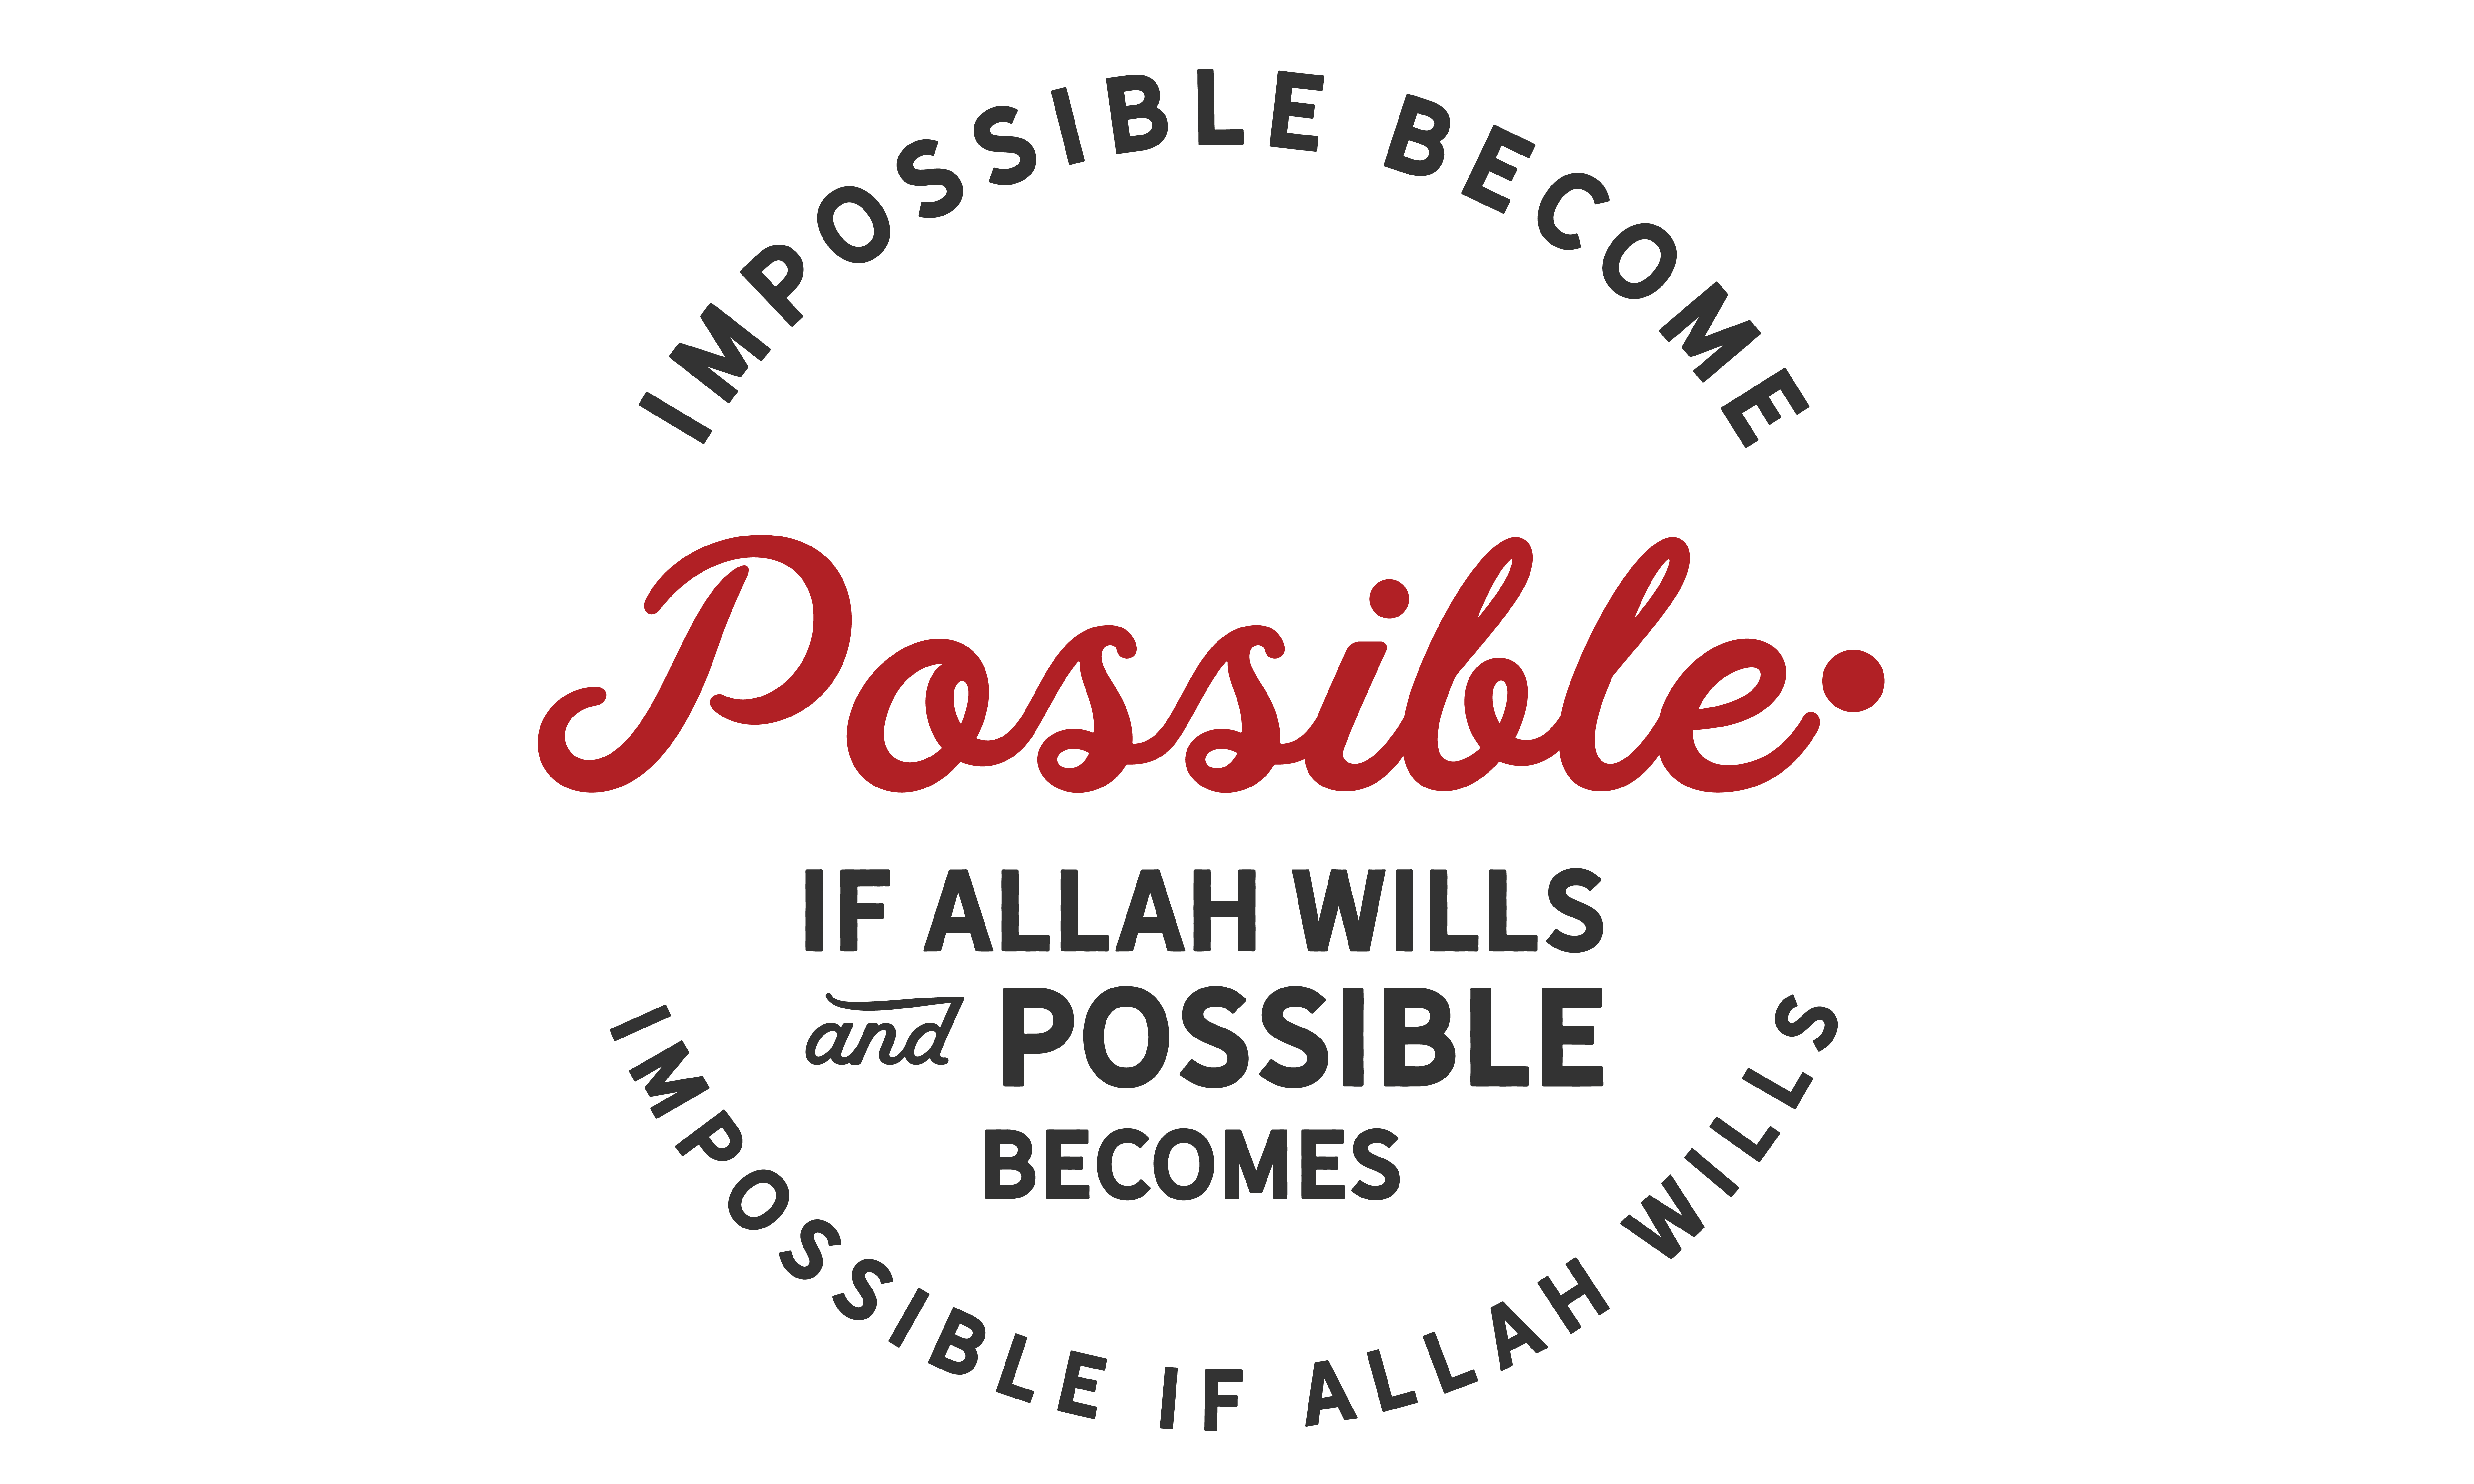 Download Free Impossible Becomes Possible If Allah Wil Graphic By Baraeiji for Cricut Explore, Silhouette and other cutting machines.